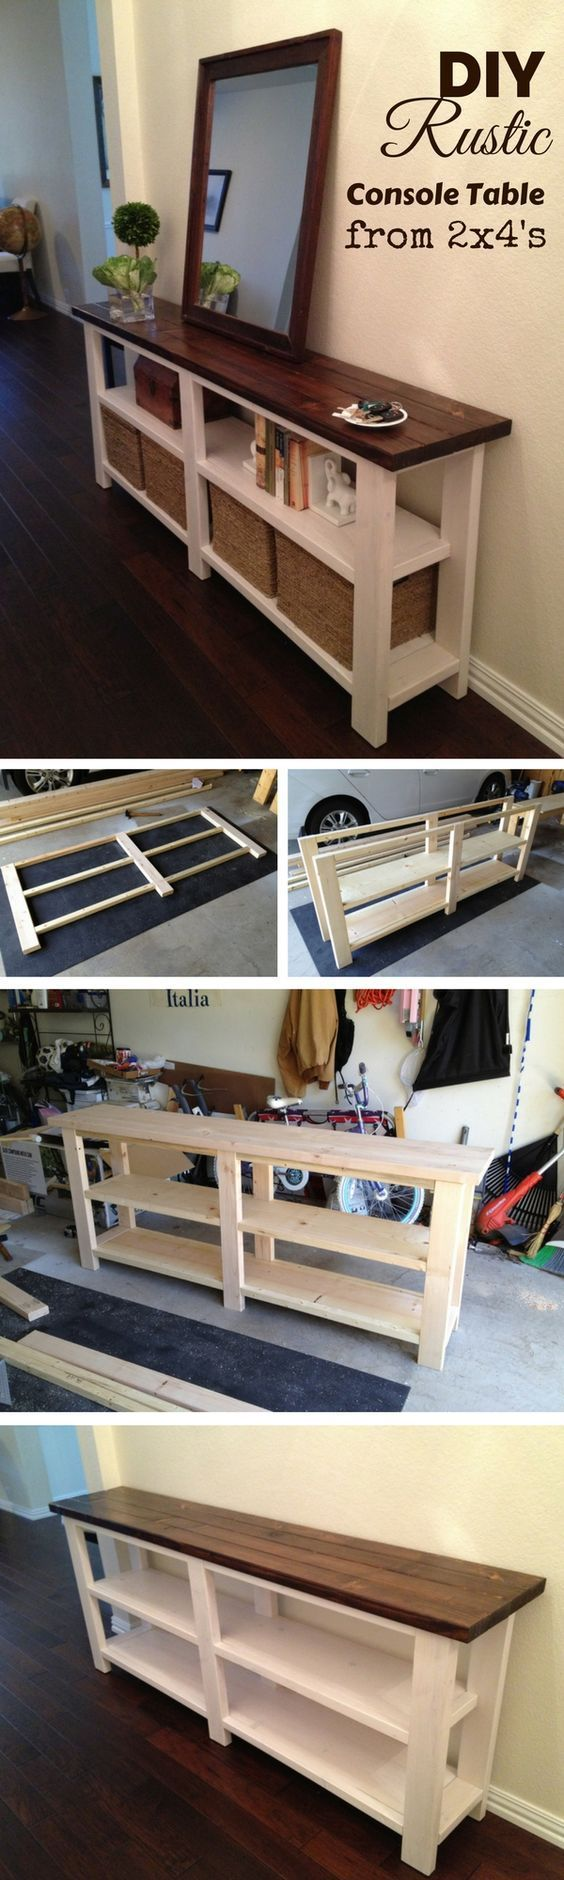 12 x 8 küchenideen  best home images on pinterest  home ideas future house and my